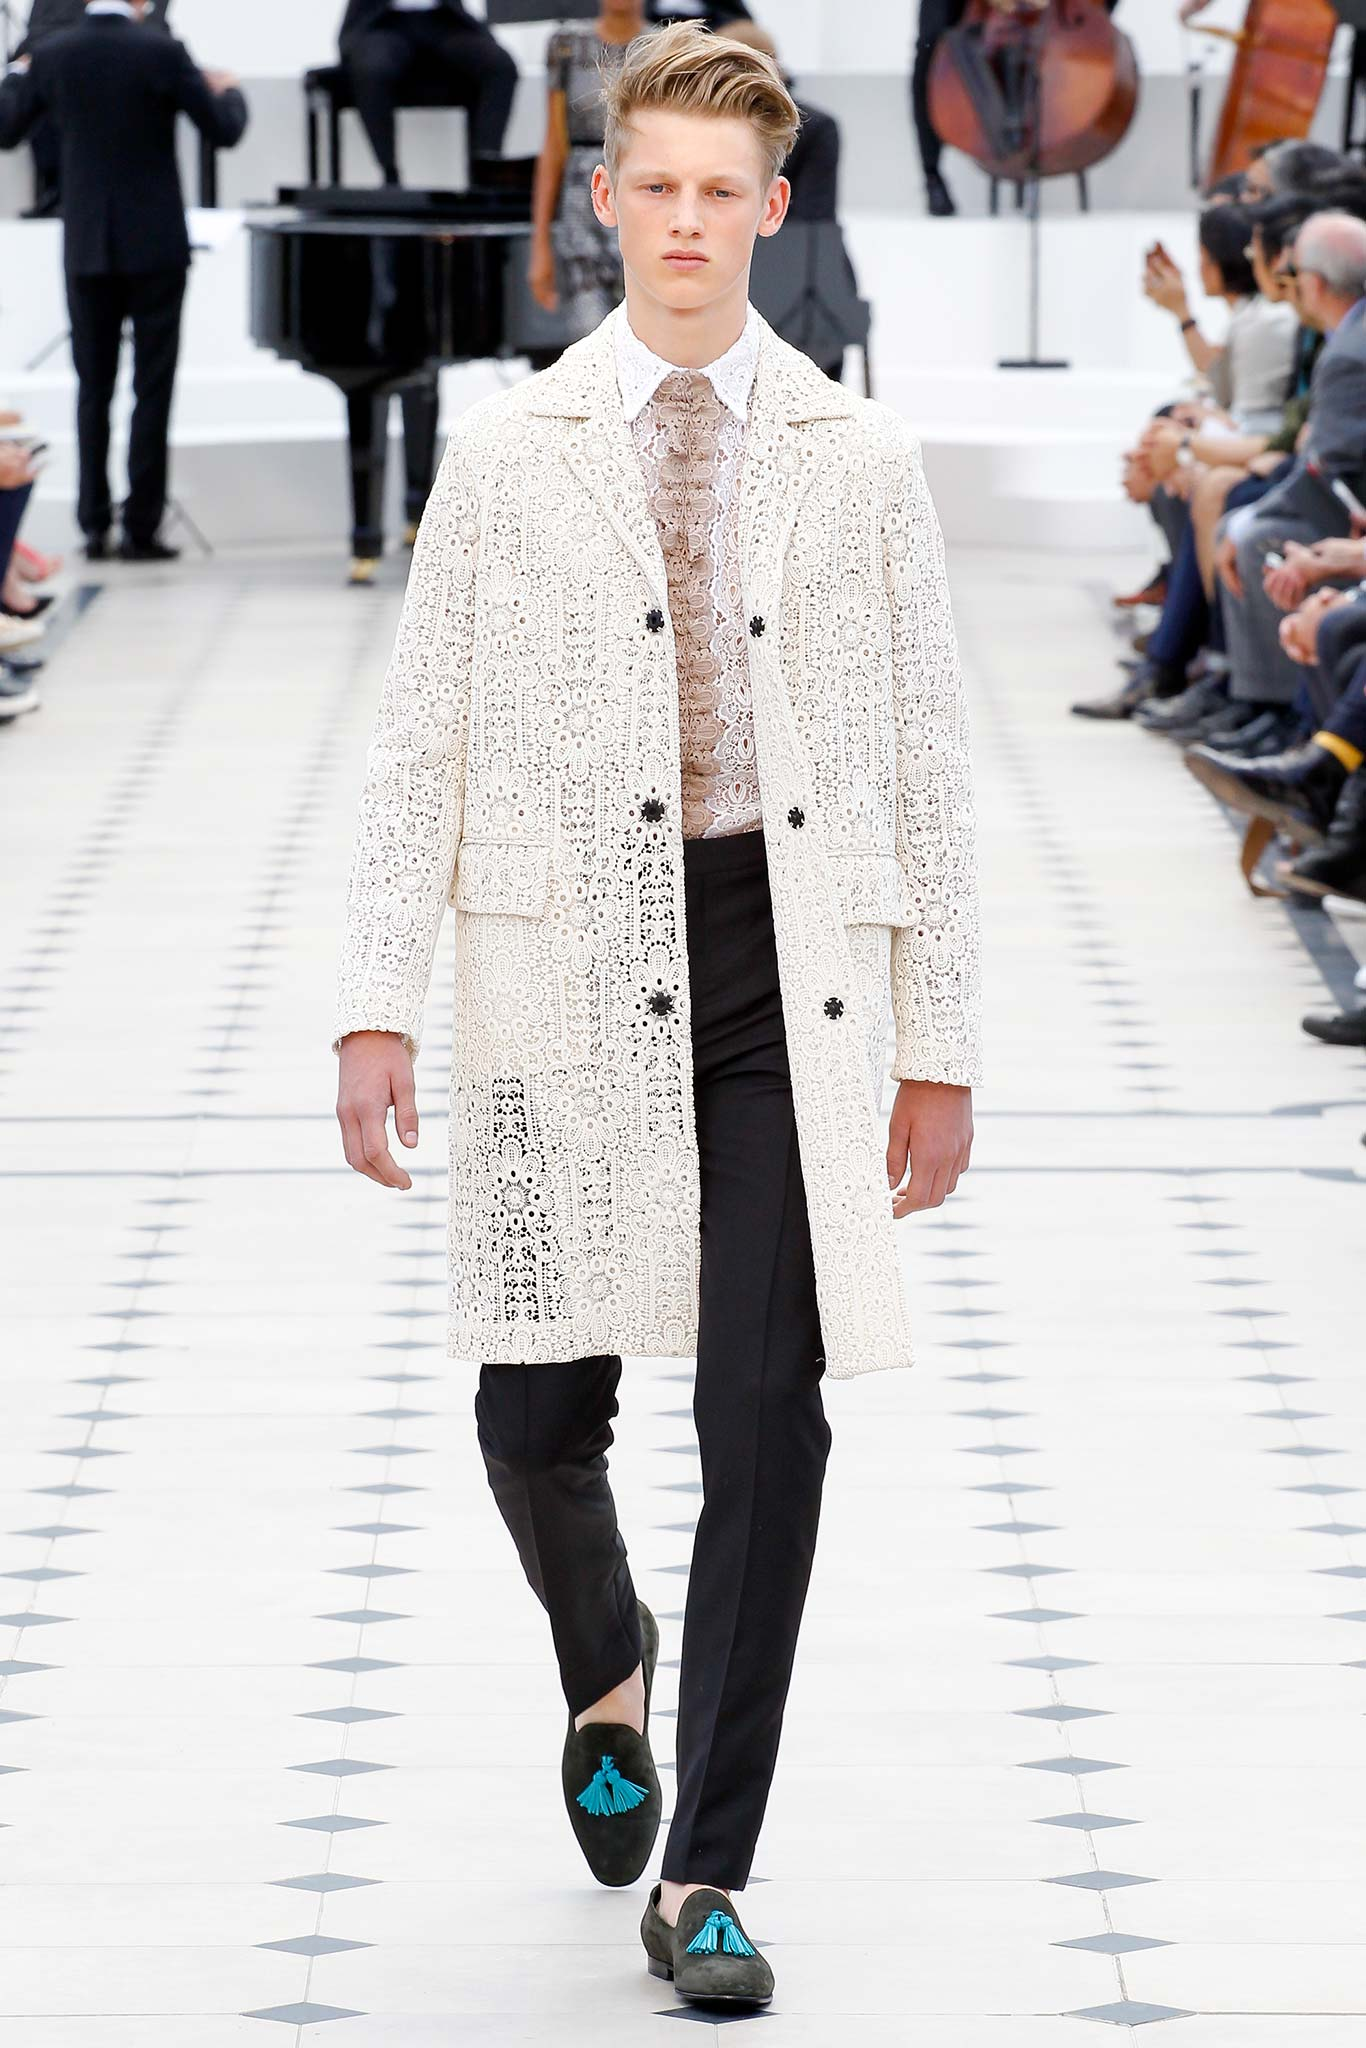 LCM: Burberry Prorsum Spring/Summer 2016 Collection